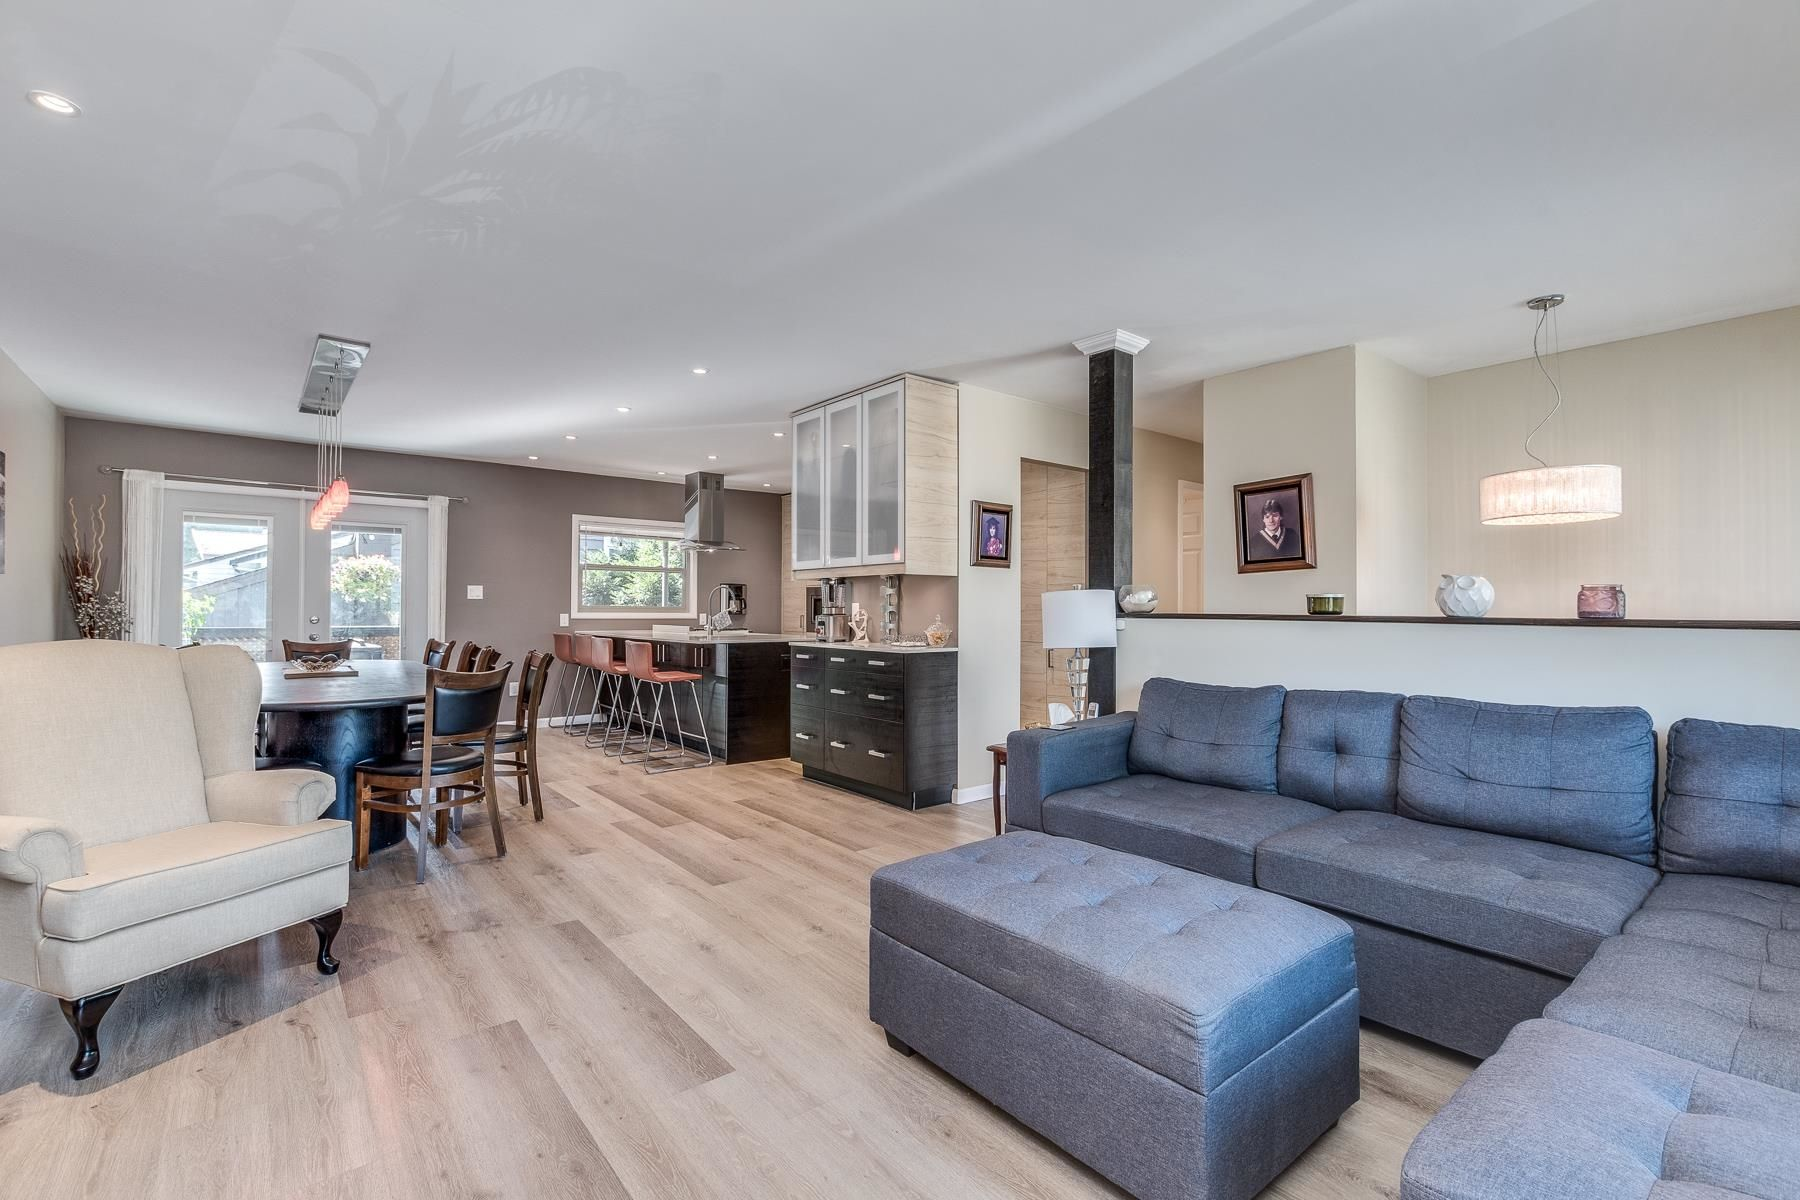 Photo 7: Photos: 3671 SOMERSET Street in Port Coquitlam: Lincoln Park PQ House for sale : MLS®# R2610216